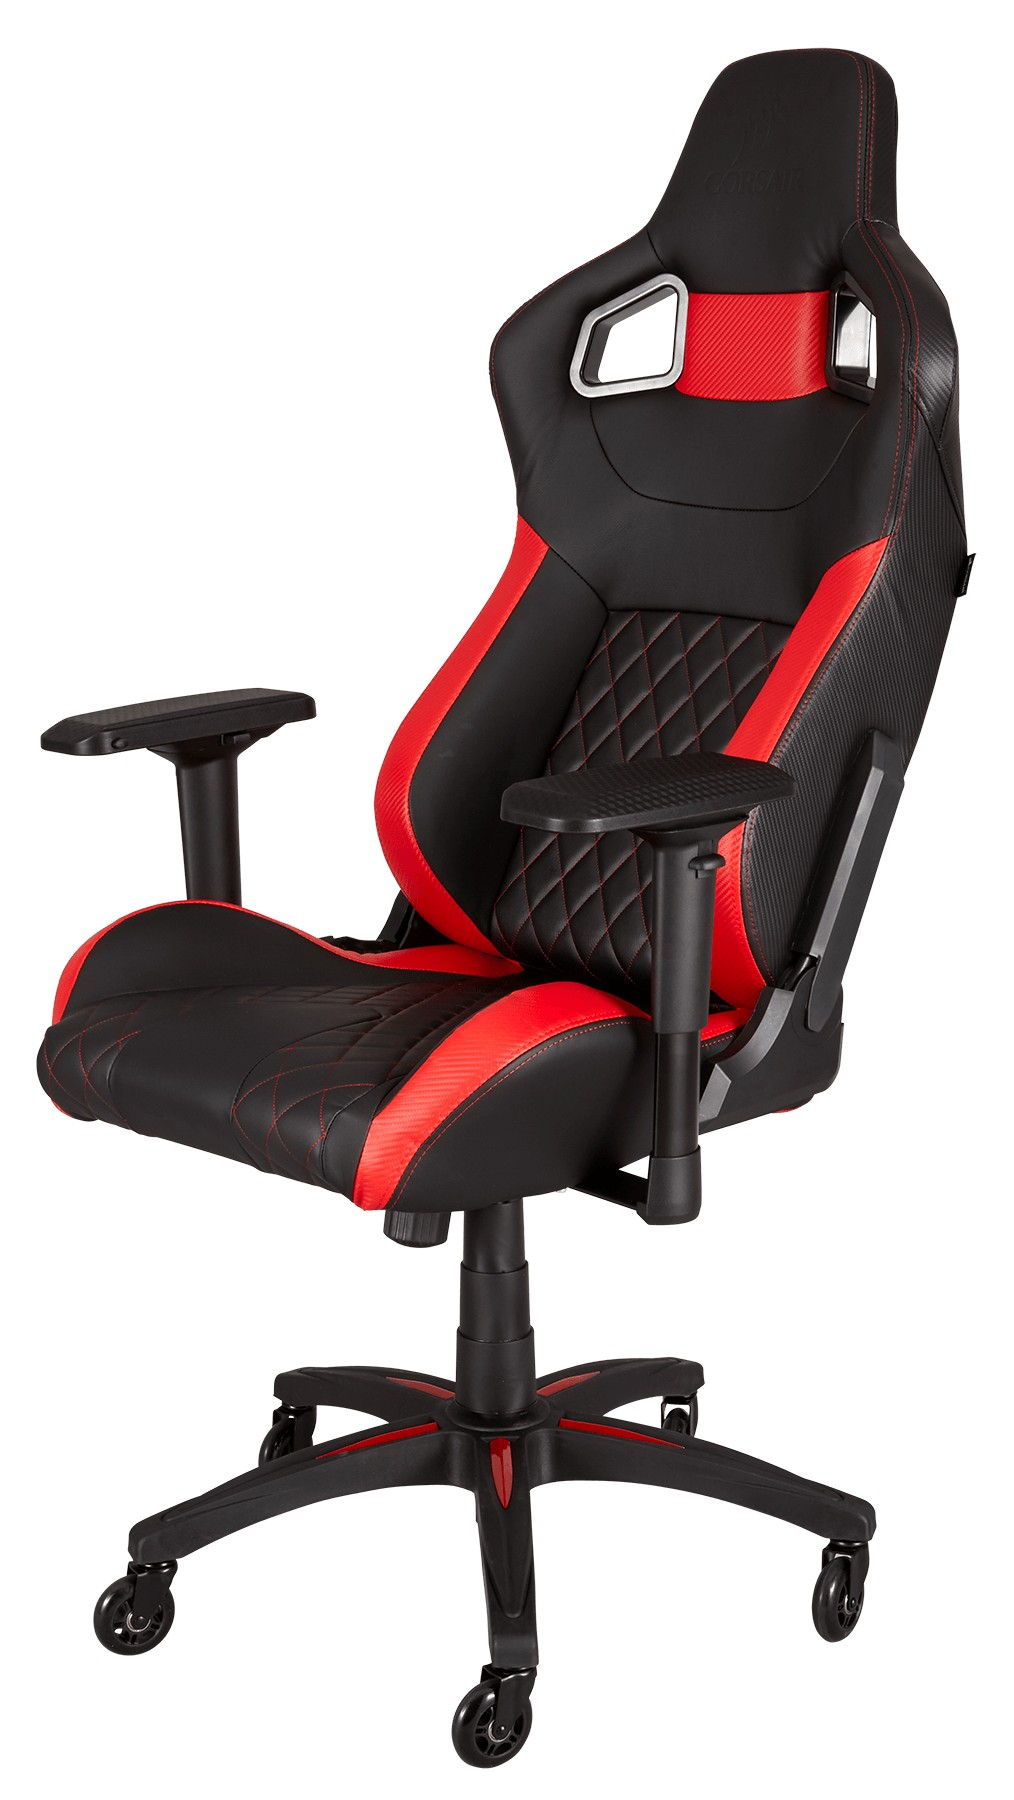 Gaming Chairs Buy Low Price In Online Shop Topmarket